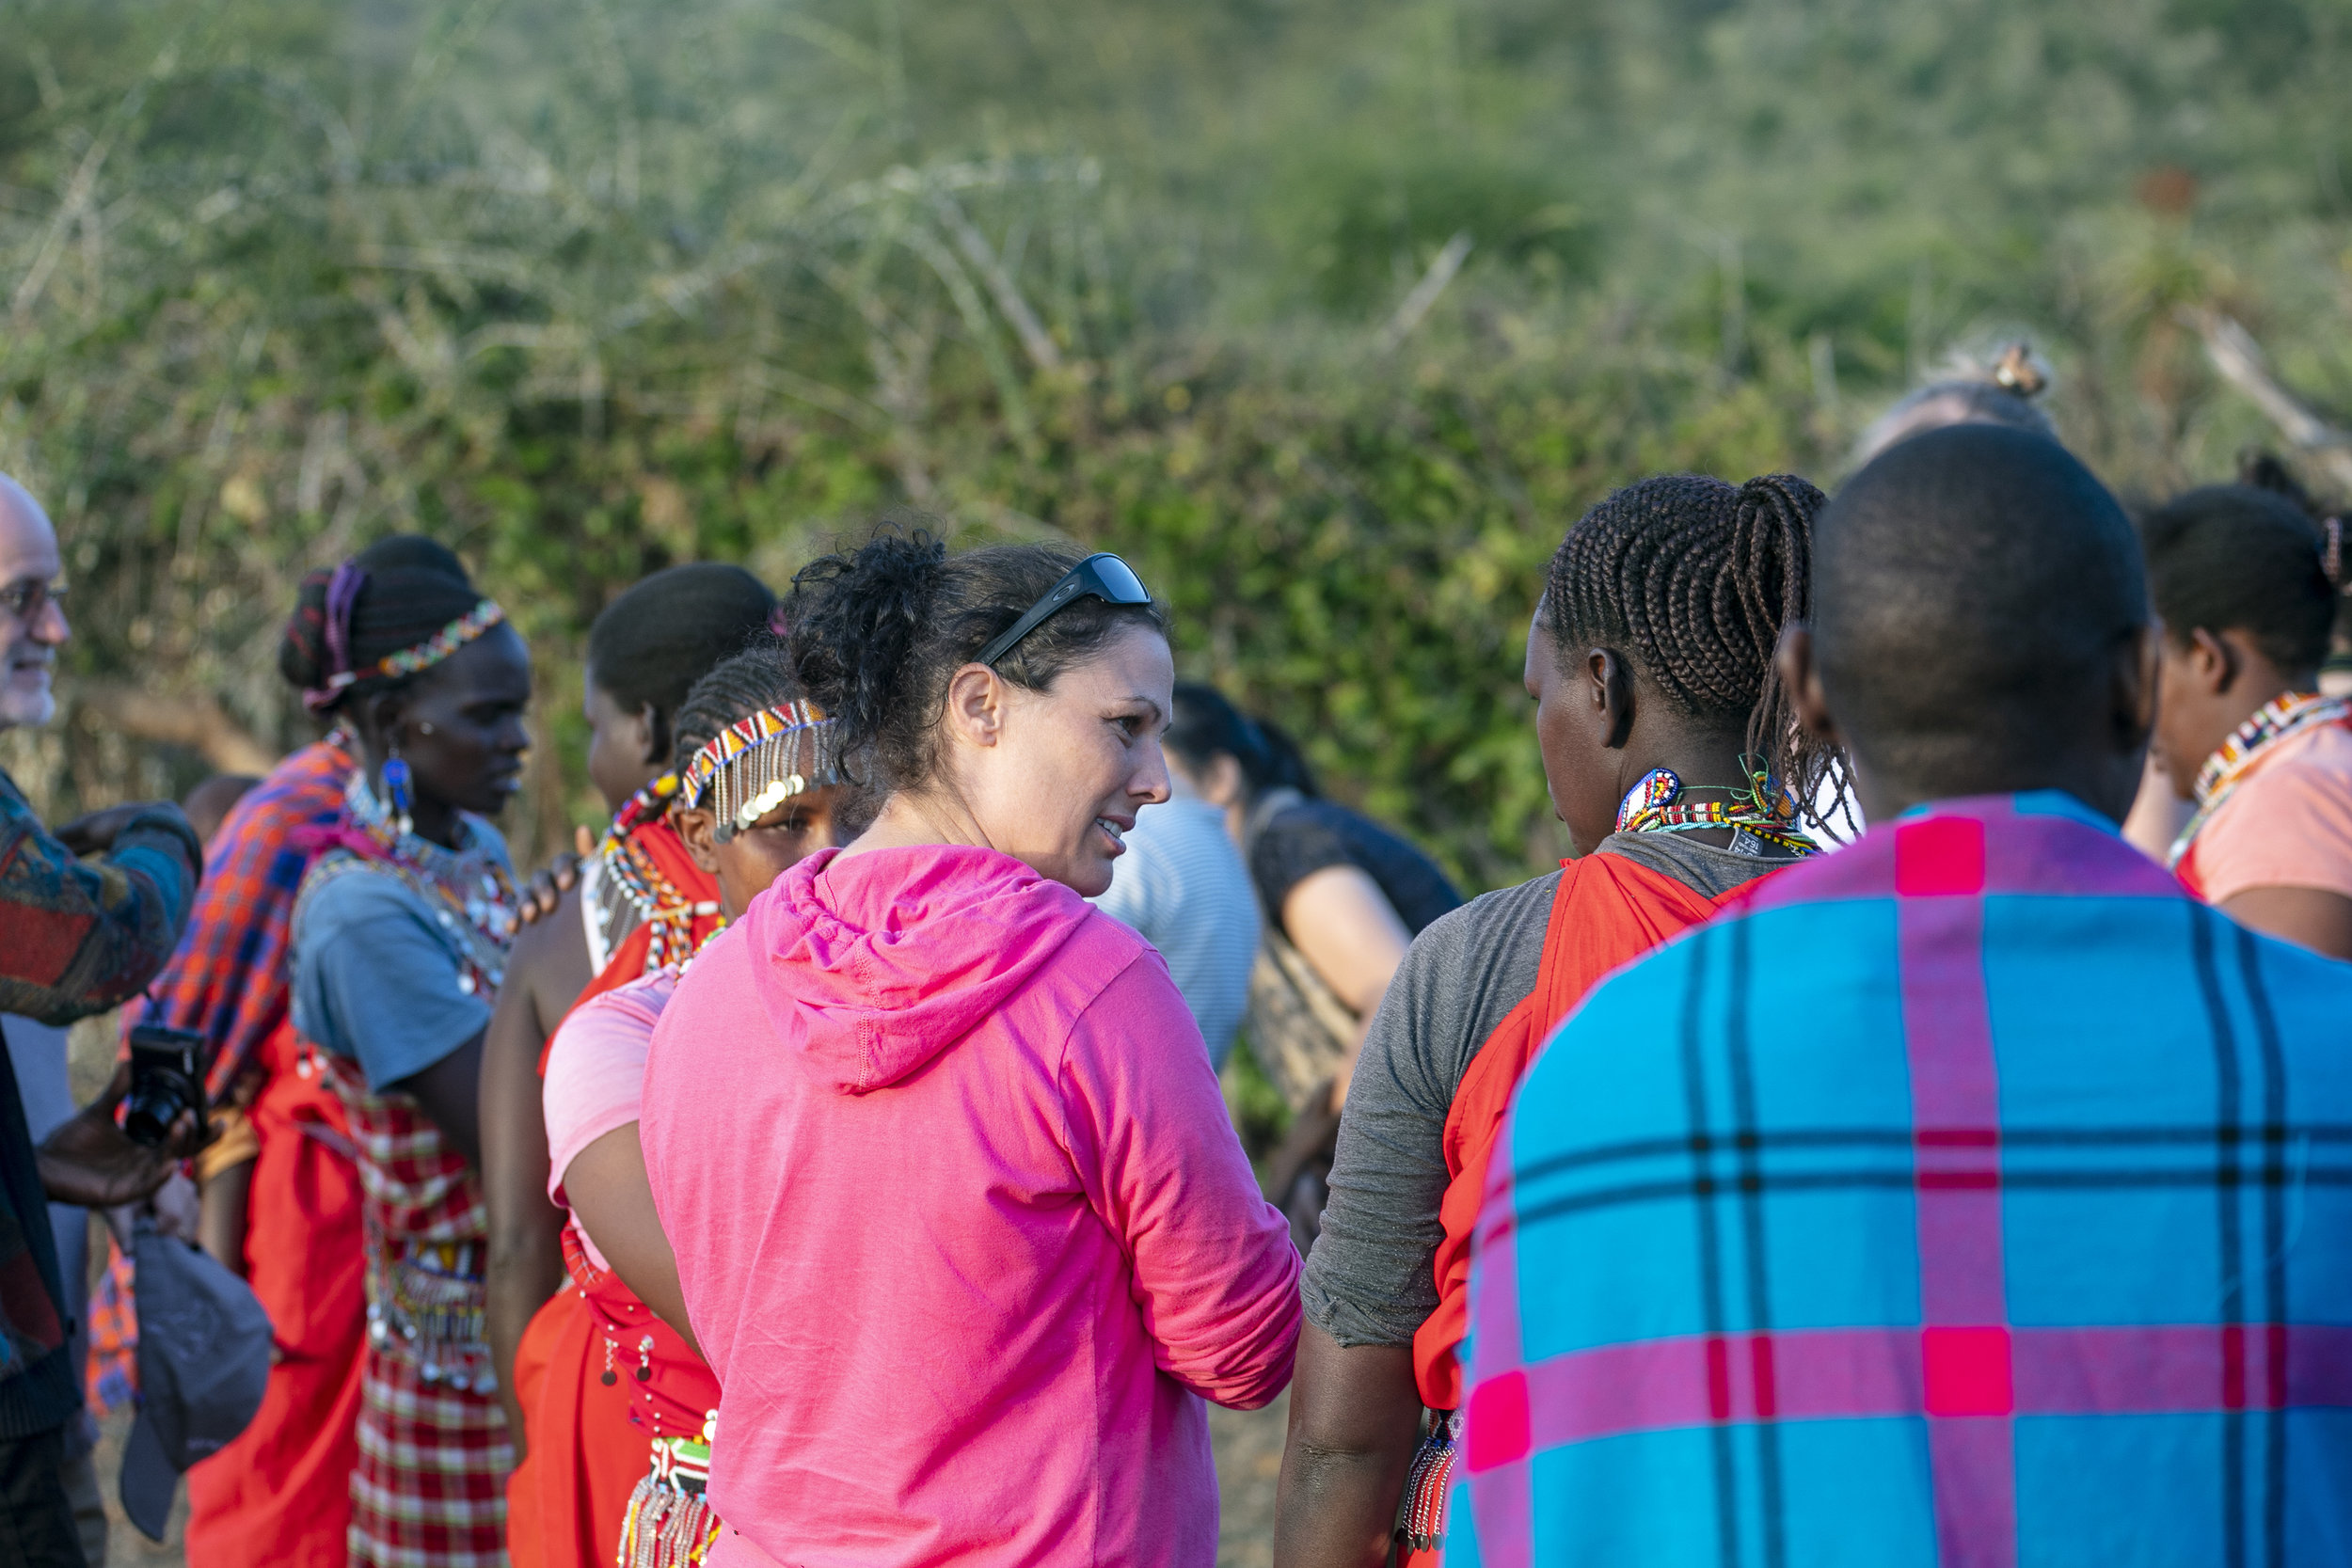 African Adventure - 22 July '18 - Lake Naivasha camp to the Loita Hills Maasai Village - 029.JPG